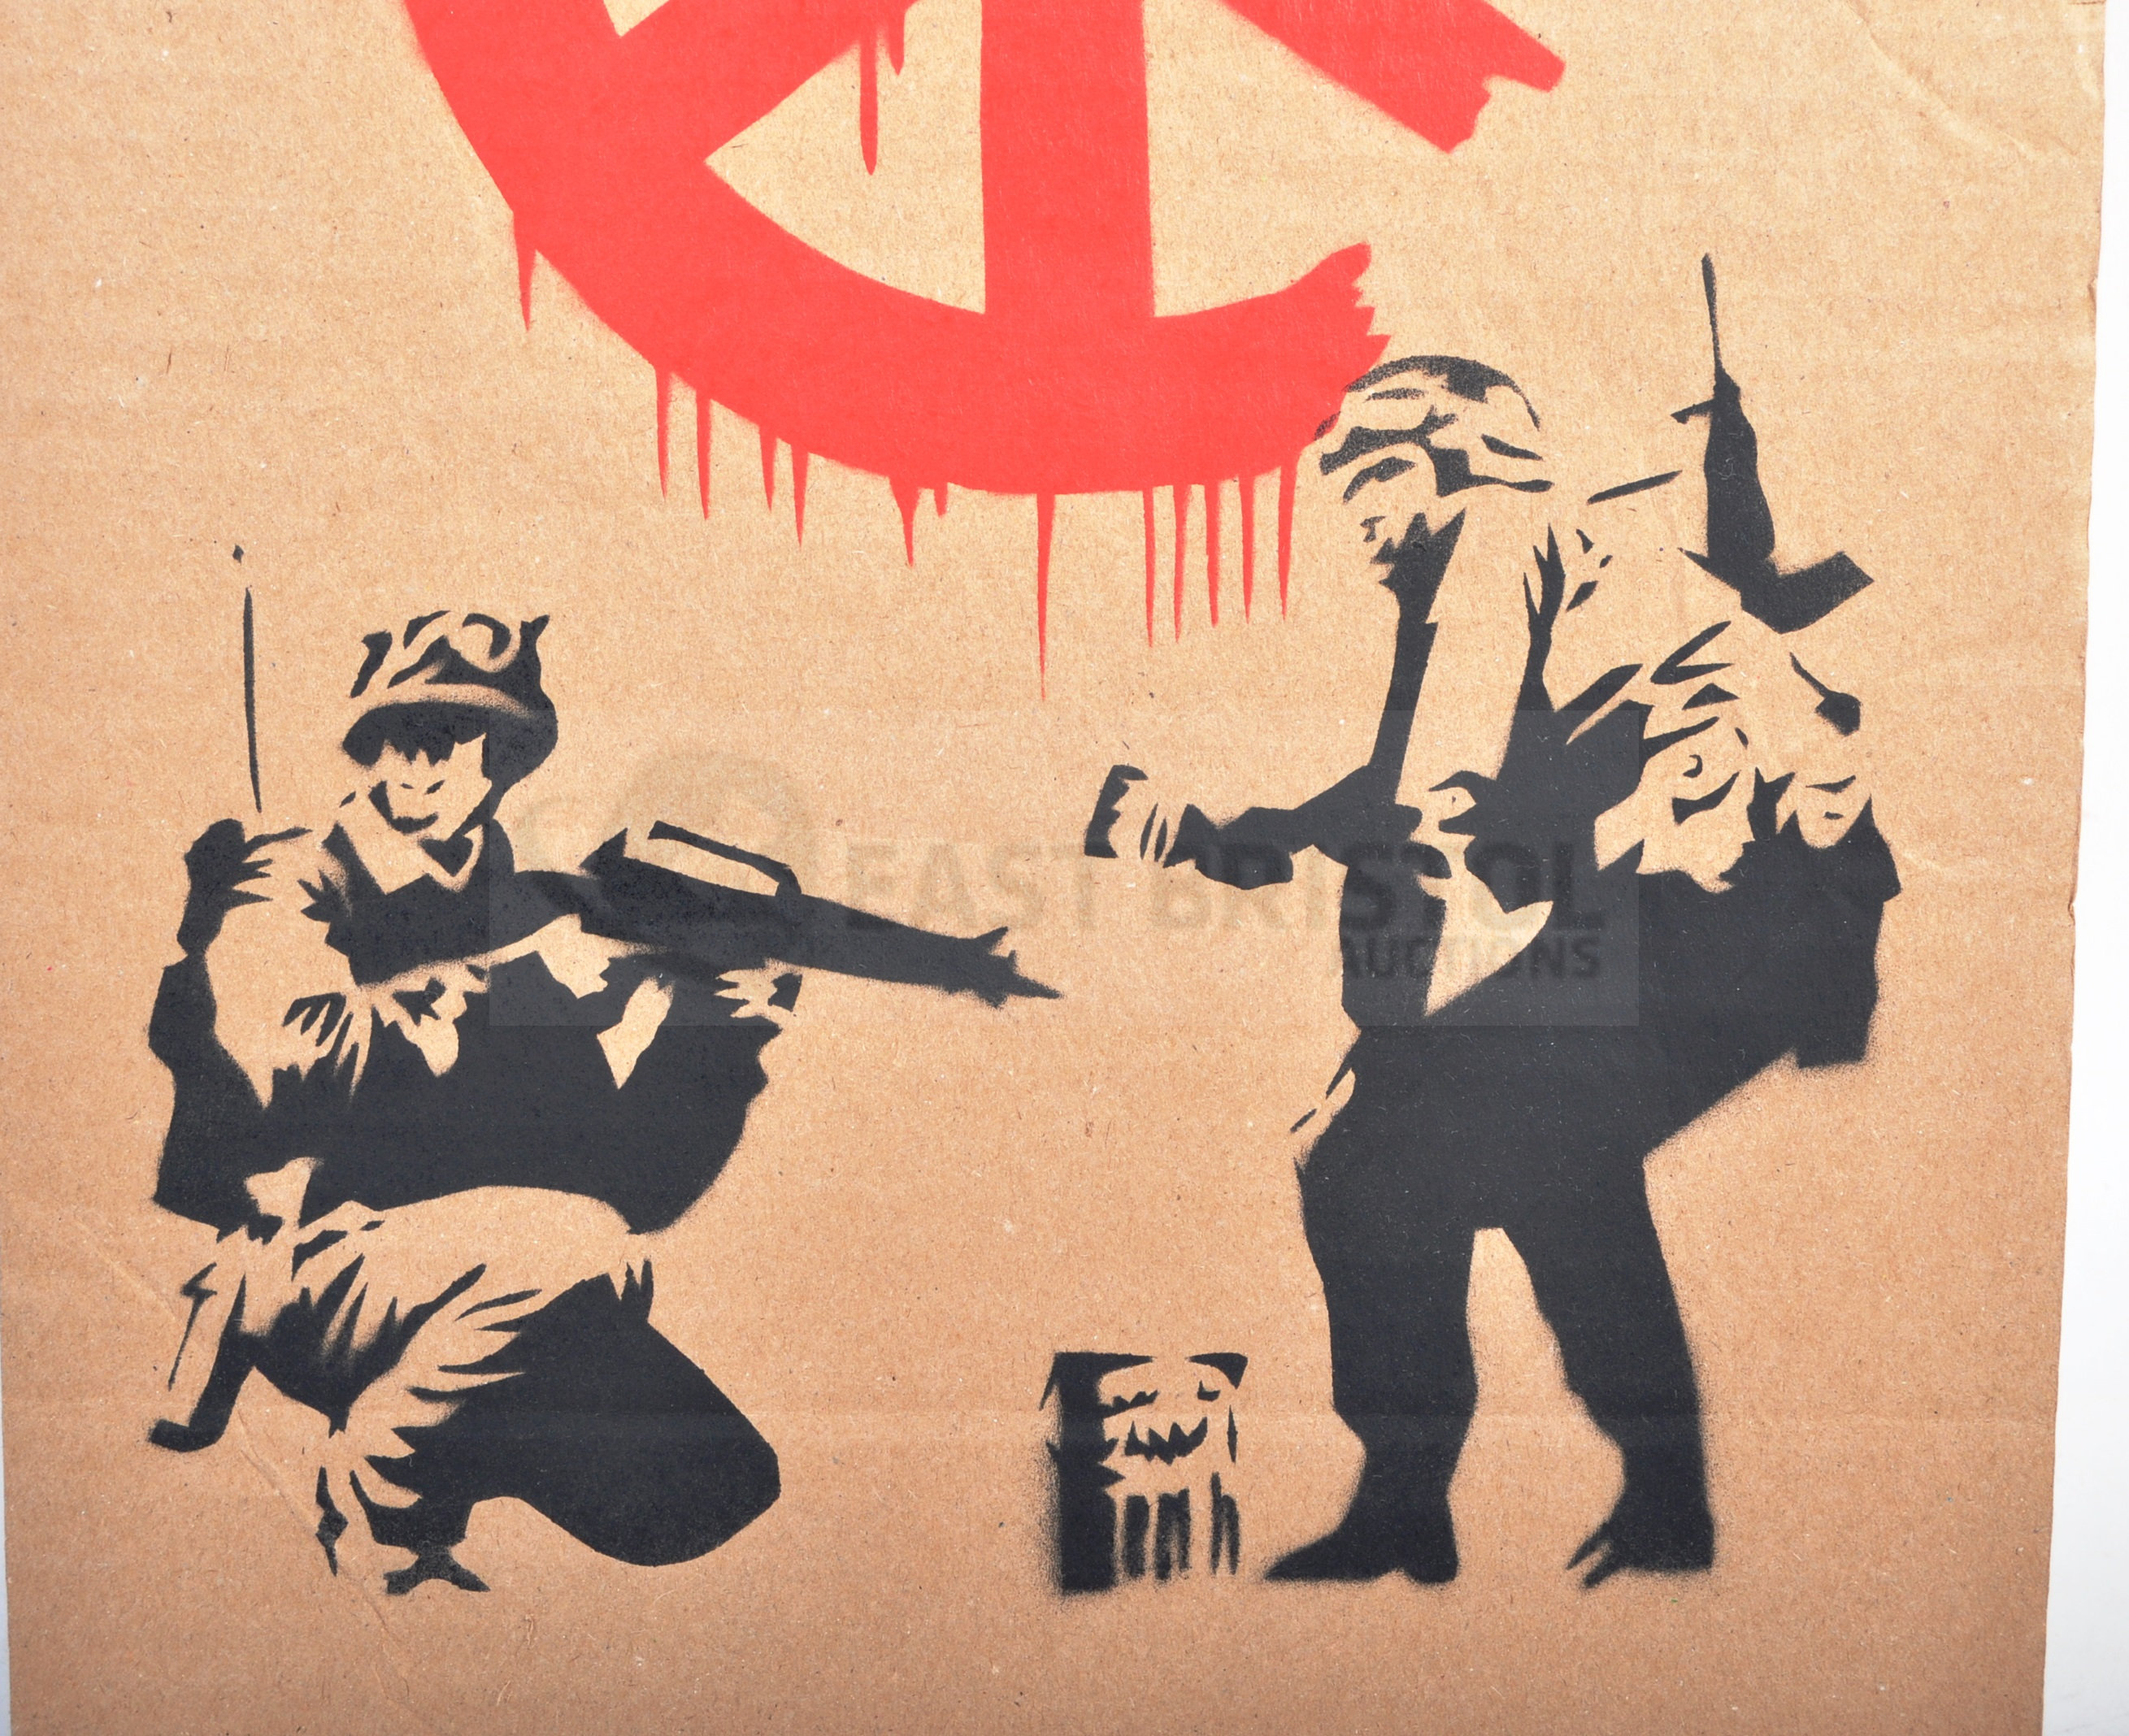 BANKSY - DISMALAND 2015 - CND SOLDIERS - Image 2 of 4